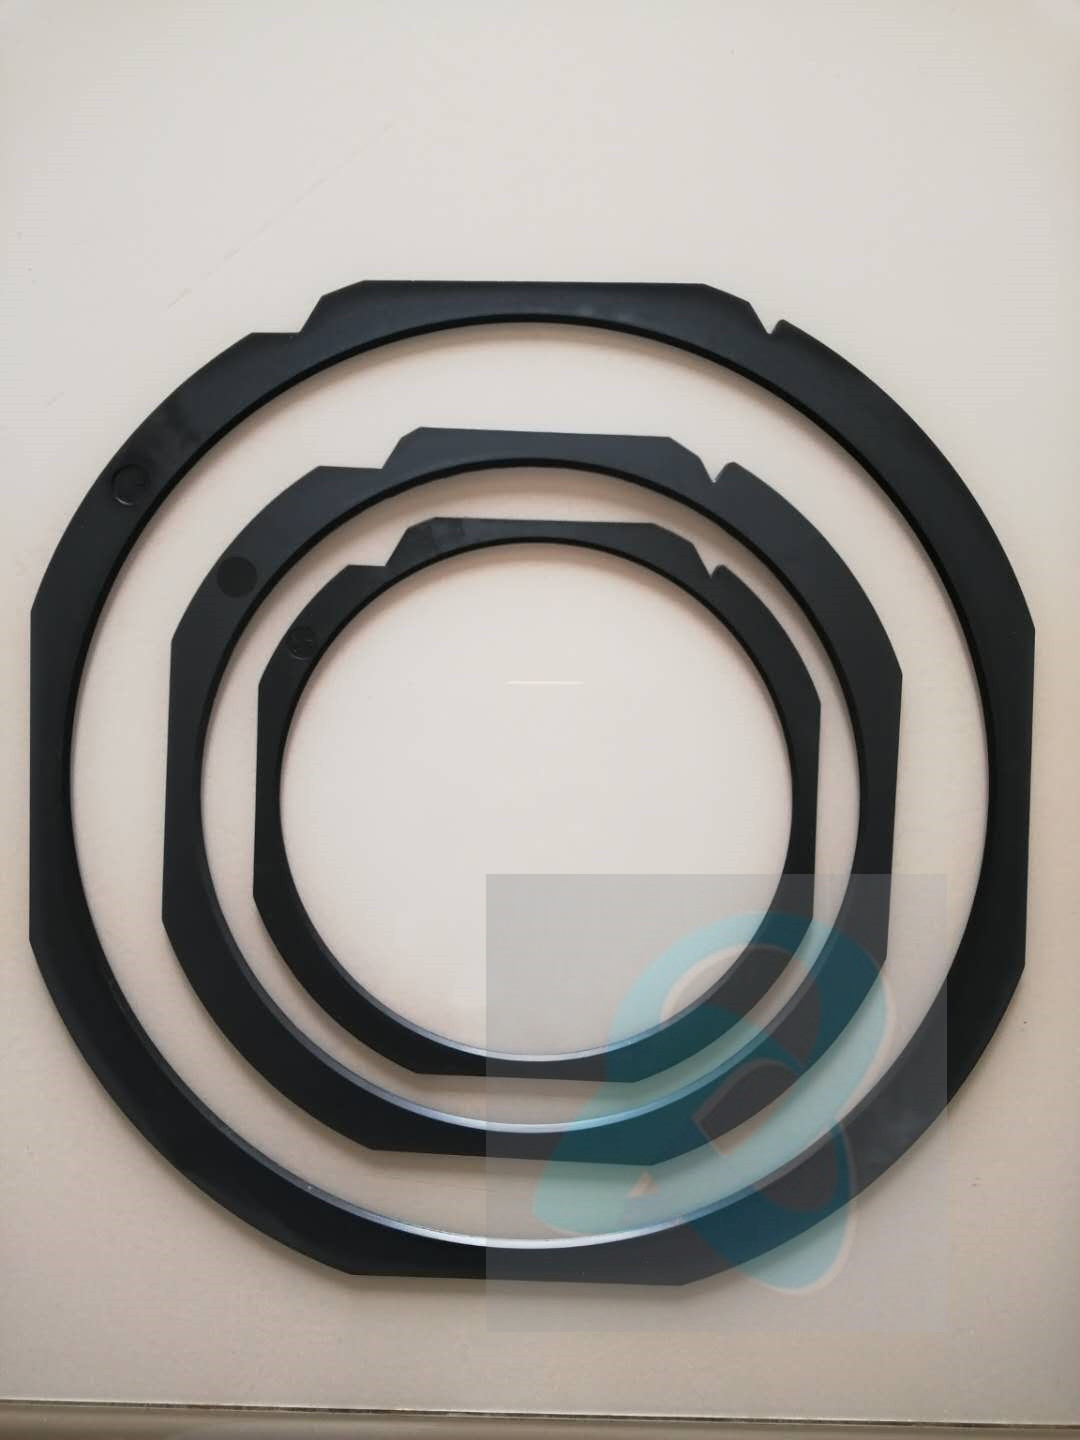 6'', 8'' and 12'' Plastic Ring Frame